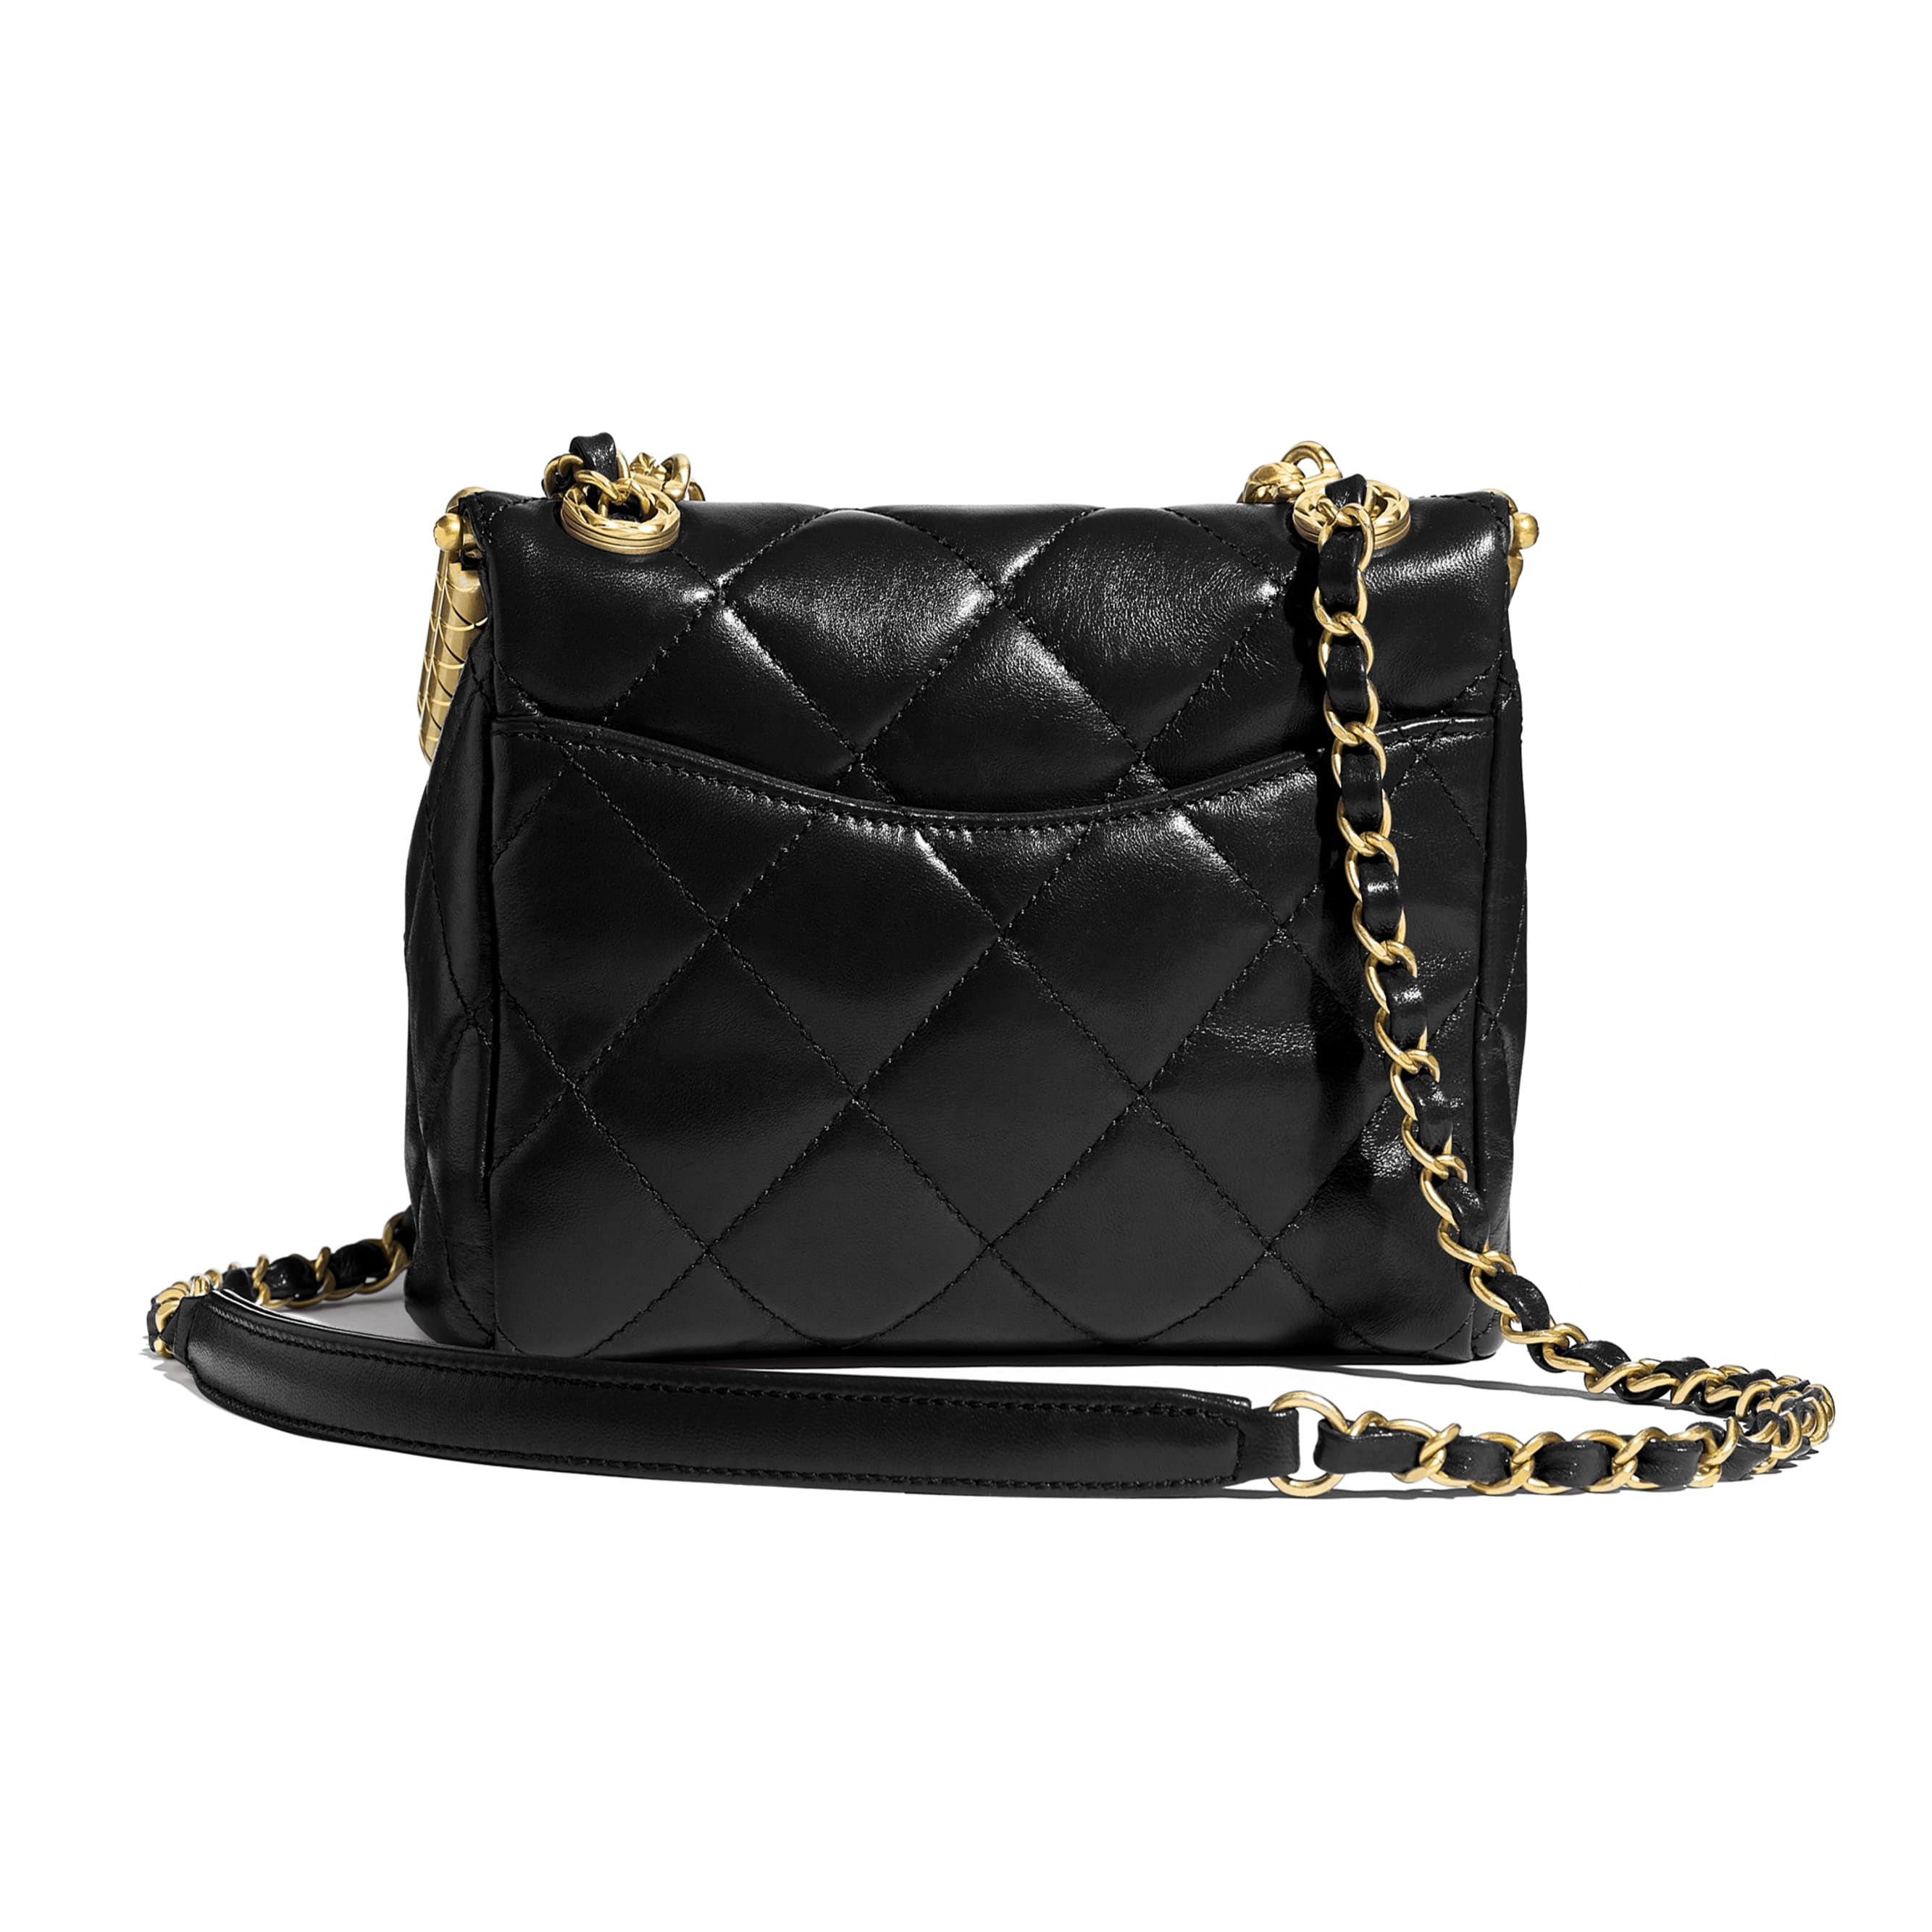 Clasp Bag - Black - Lambskin - CHANEL - Alternative view - see standard sized version